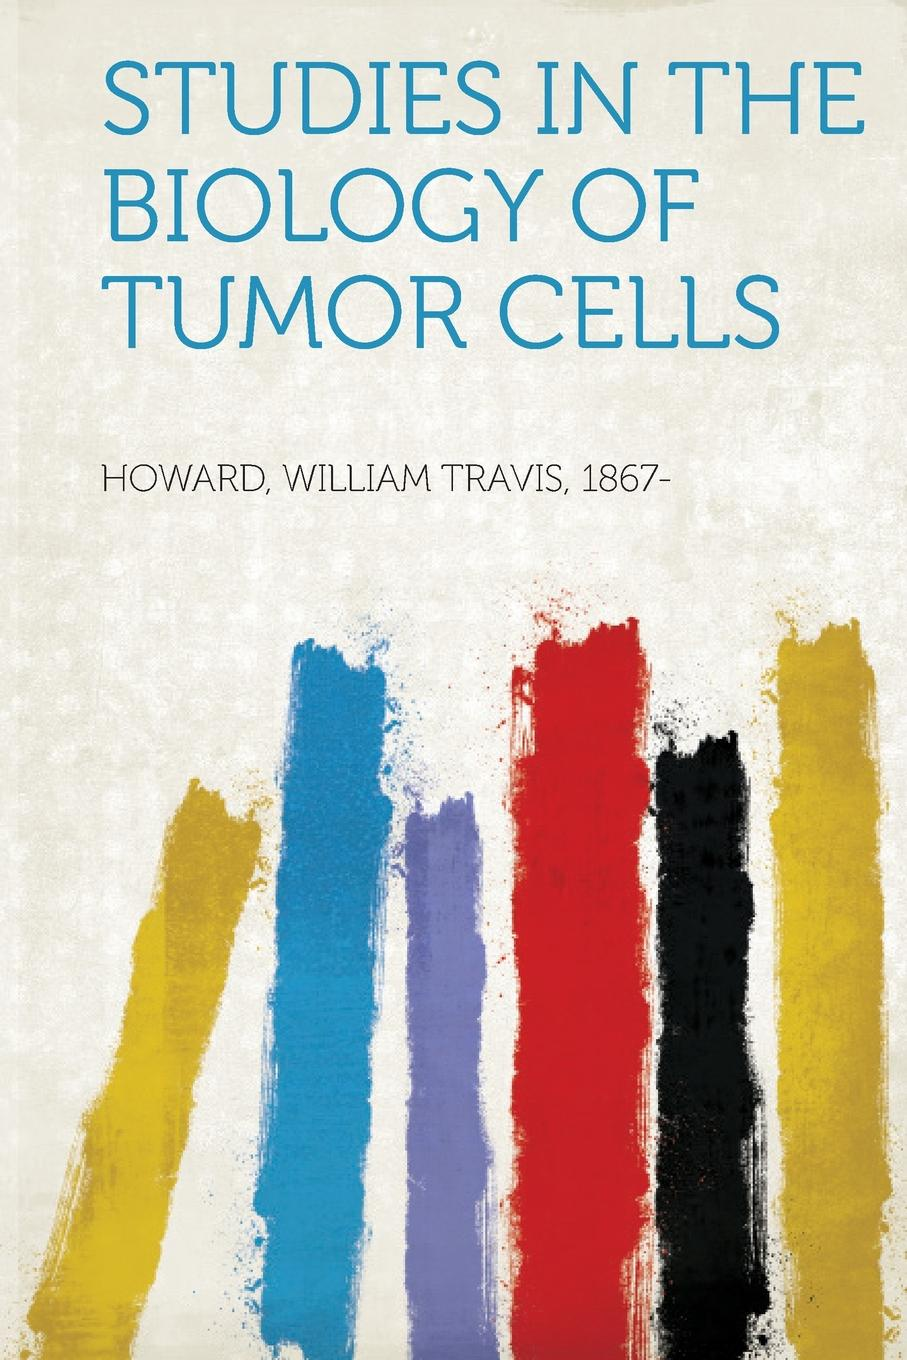 Фото - Howard William Travis 1867- Studies in the Biology of Tumor Cells w t howard studies in the biology of tumor cells 1911